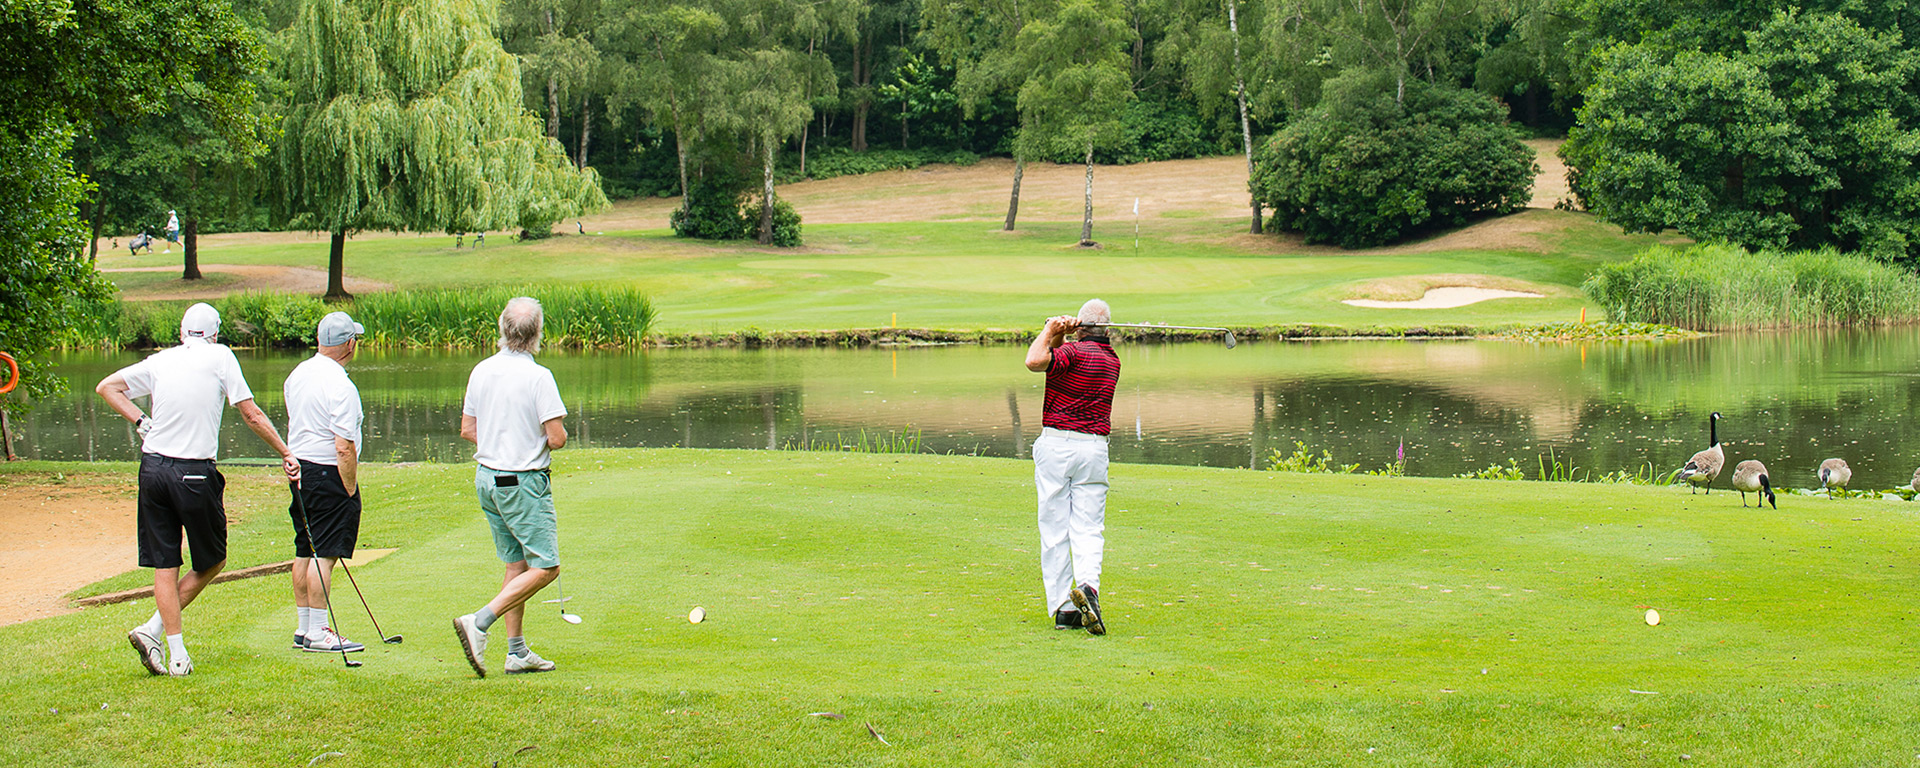 The Golf Course at Silvermere Golf & Leisure